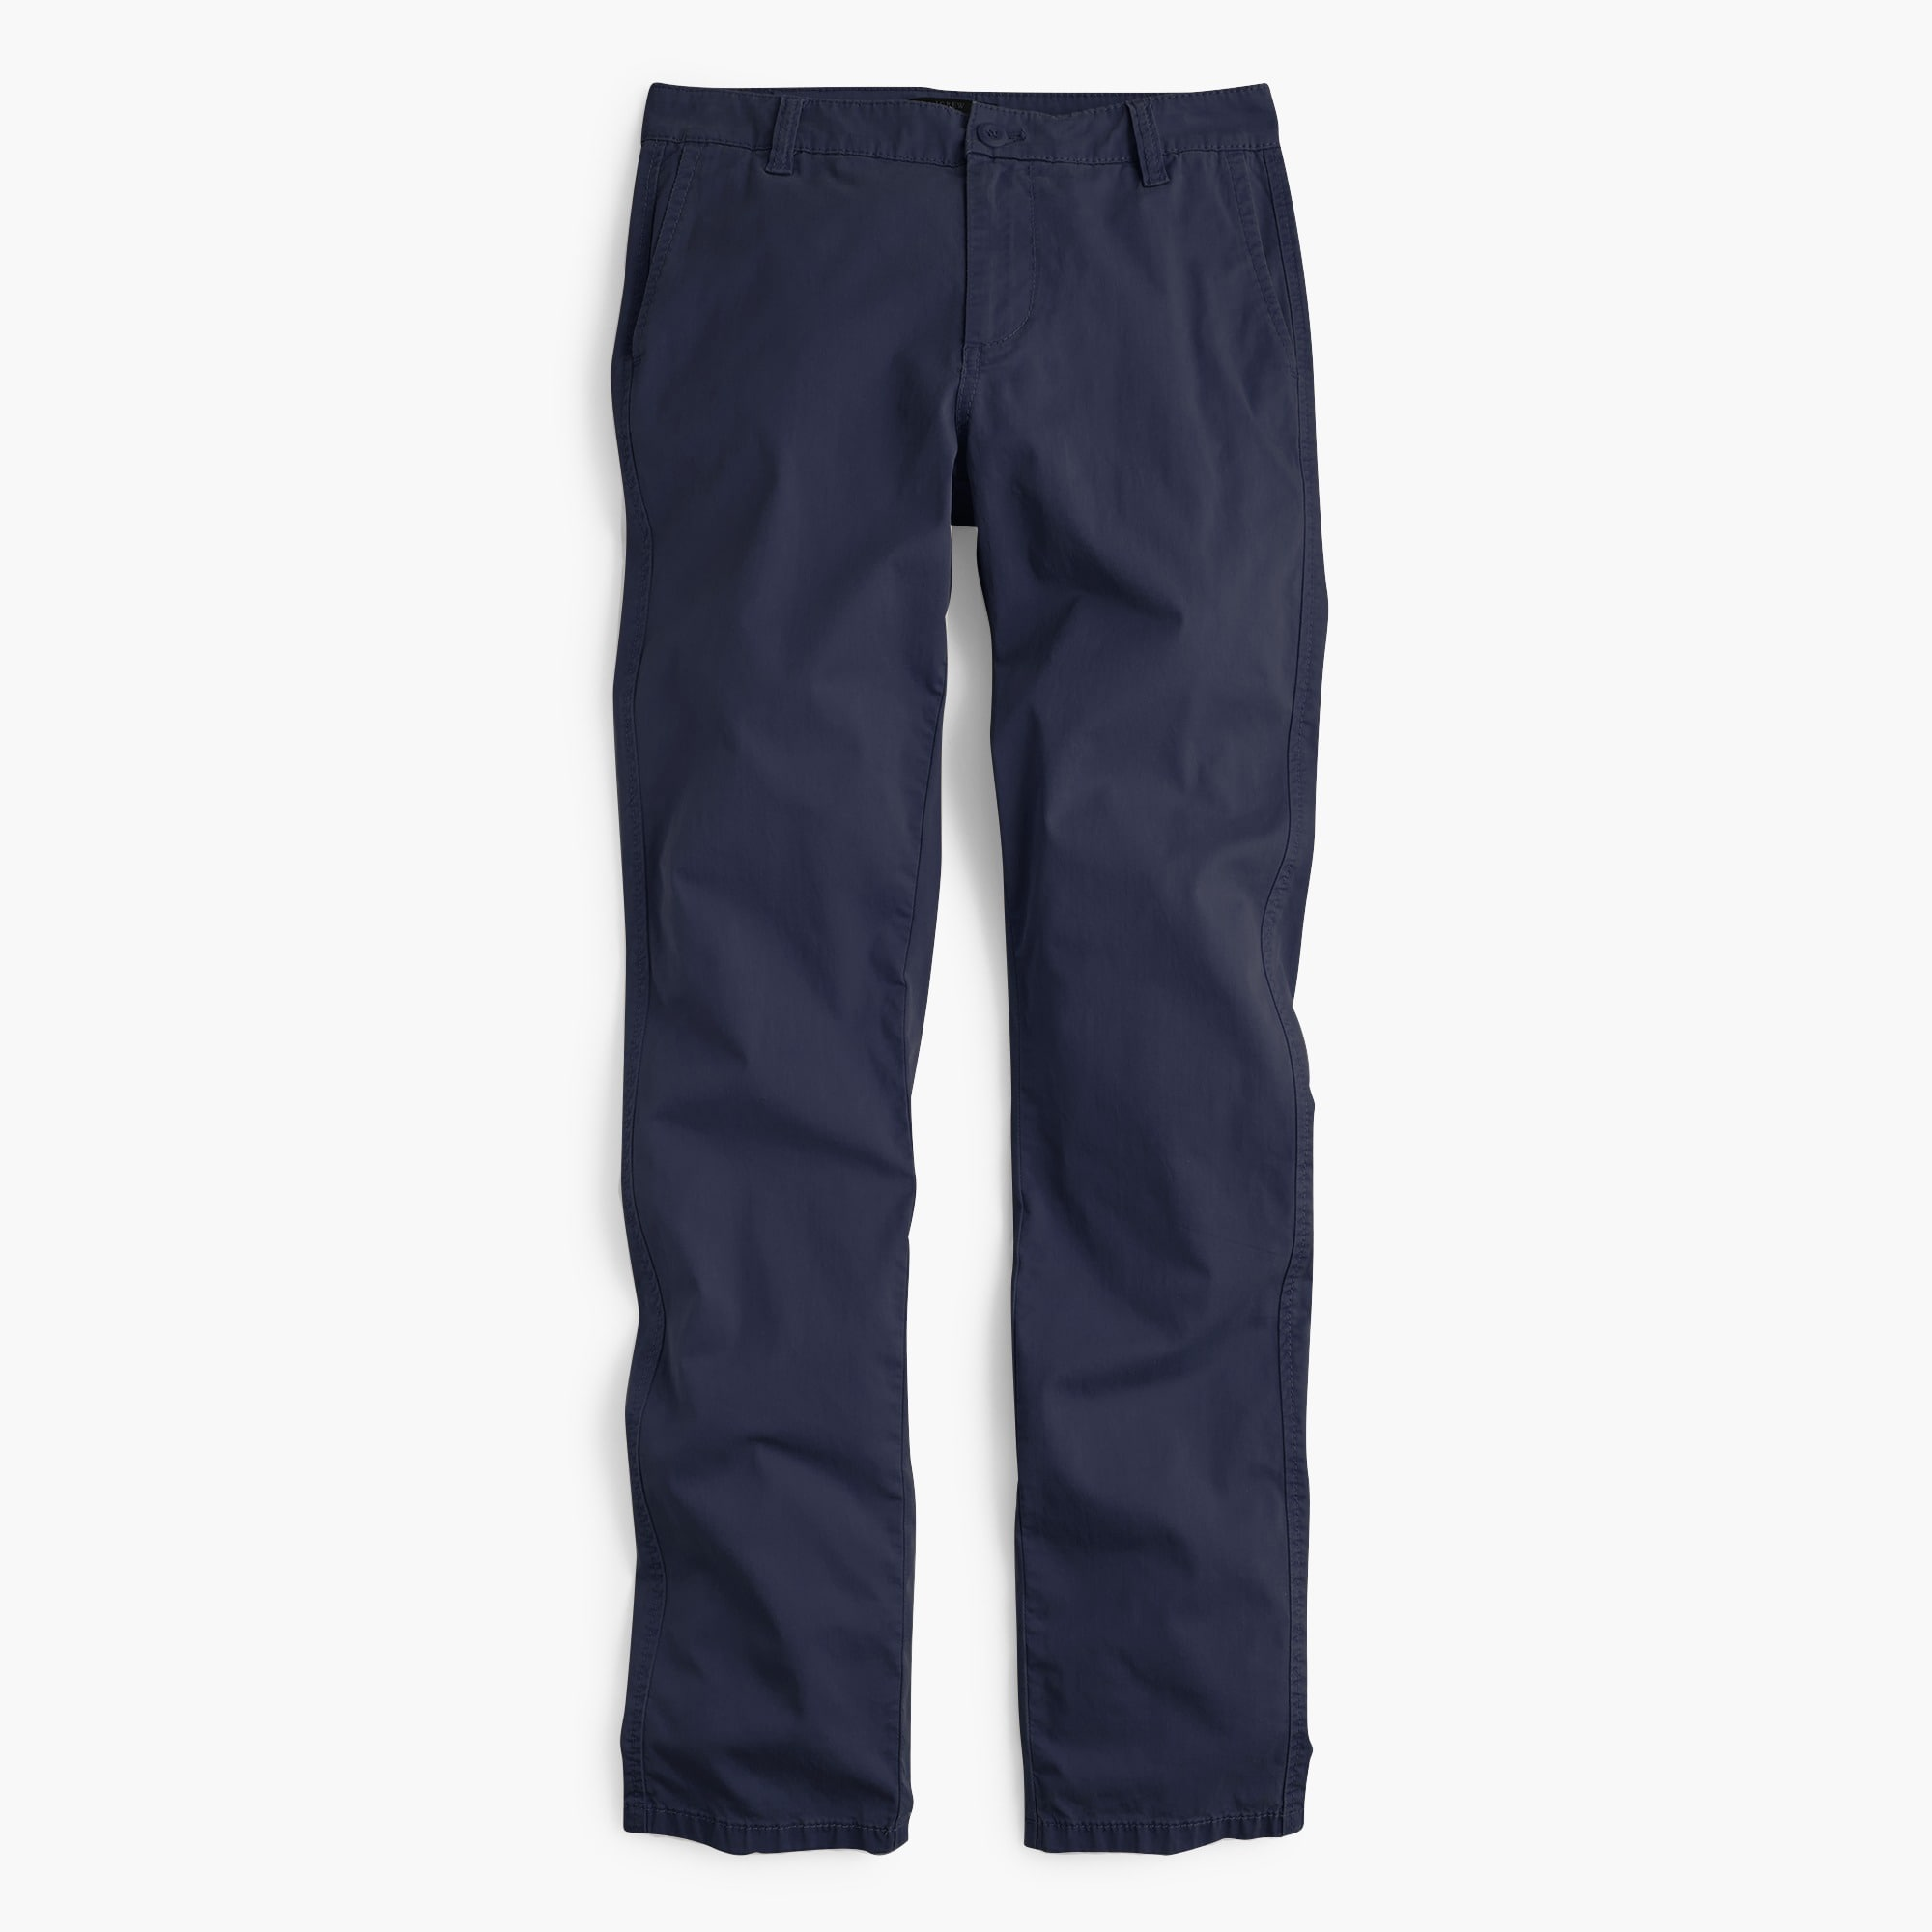 Tall straight-leg pant in stretch chino